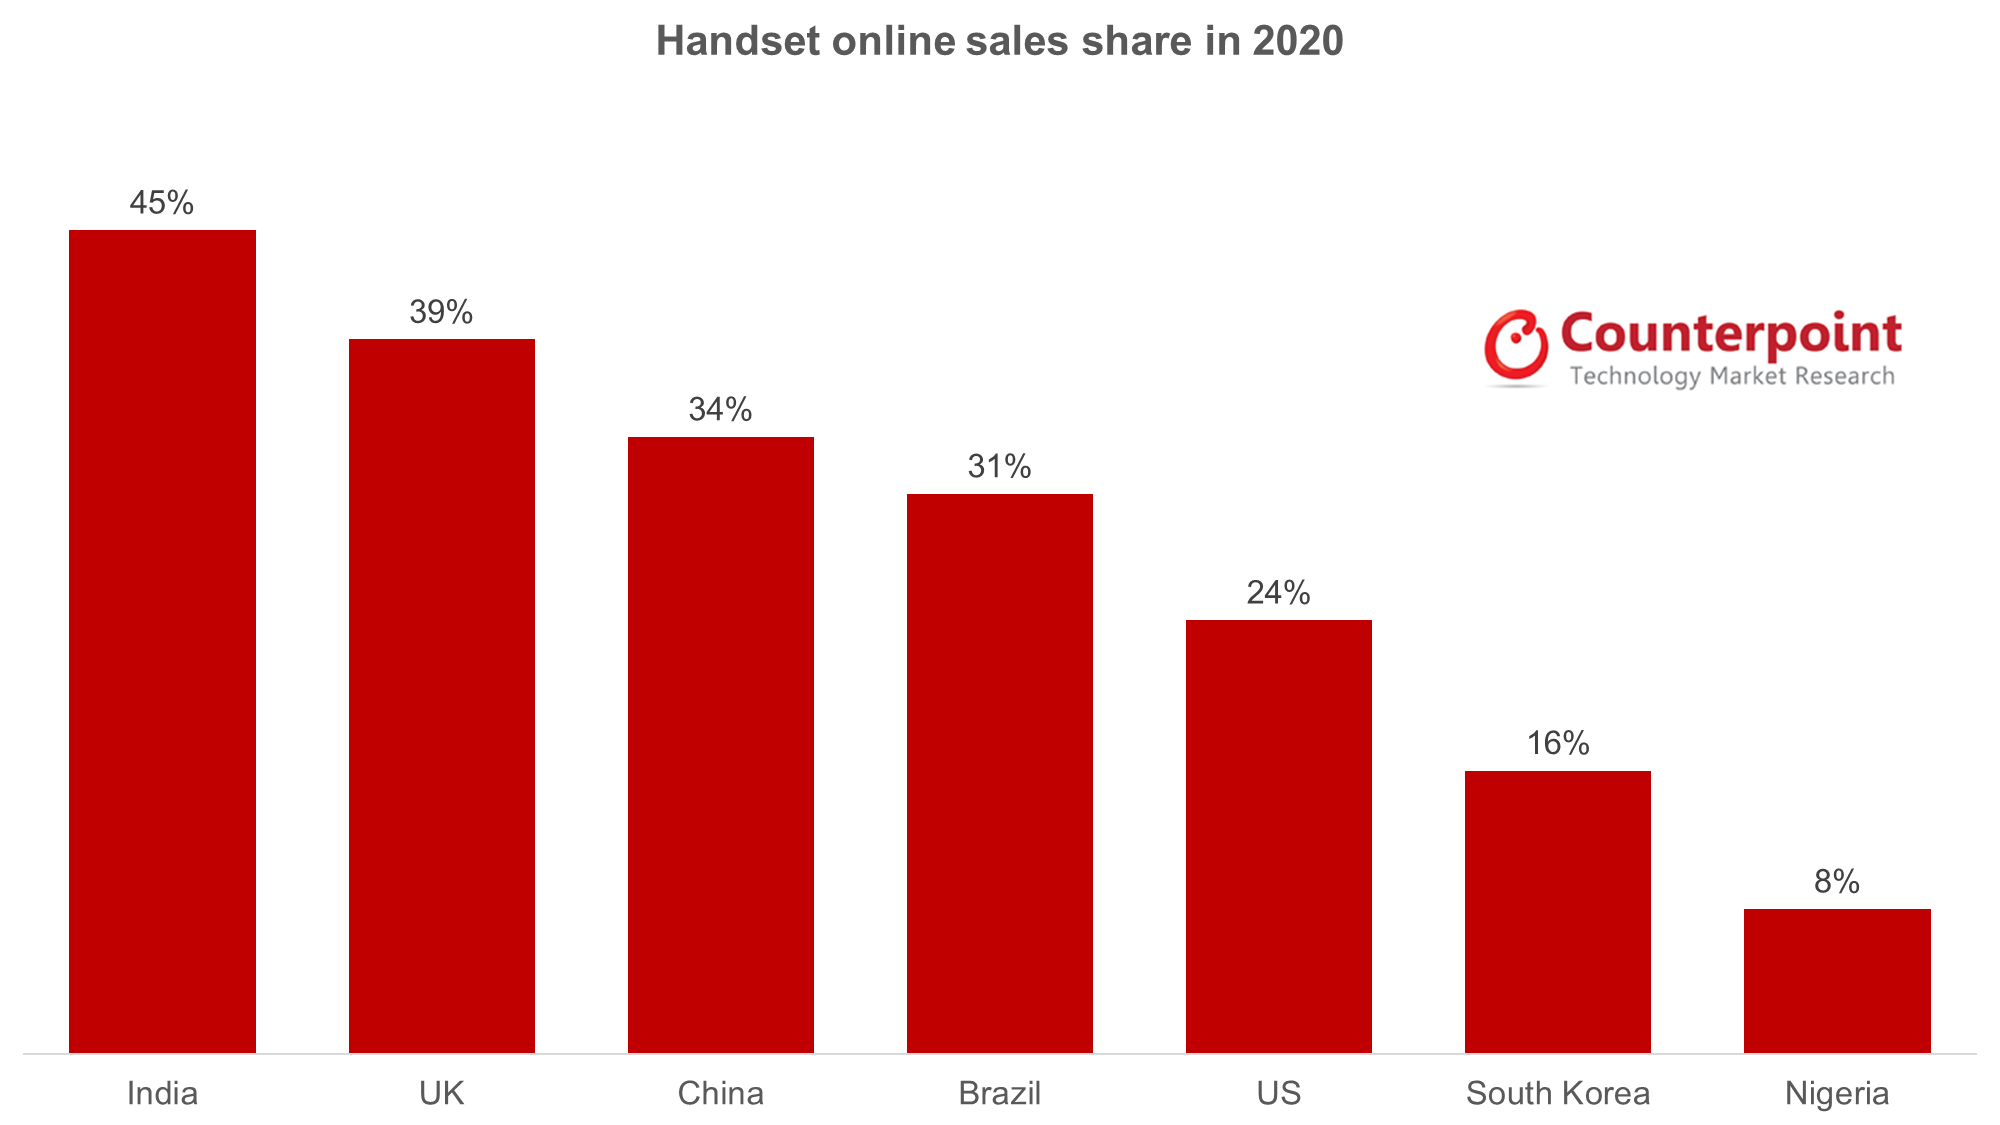 Nearly 26% of mobile phones sold online in 2020; India leads with highest online sales share: Counterpoint